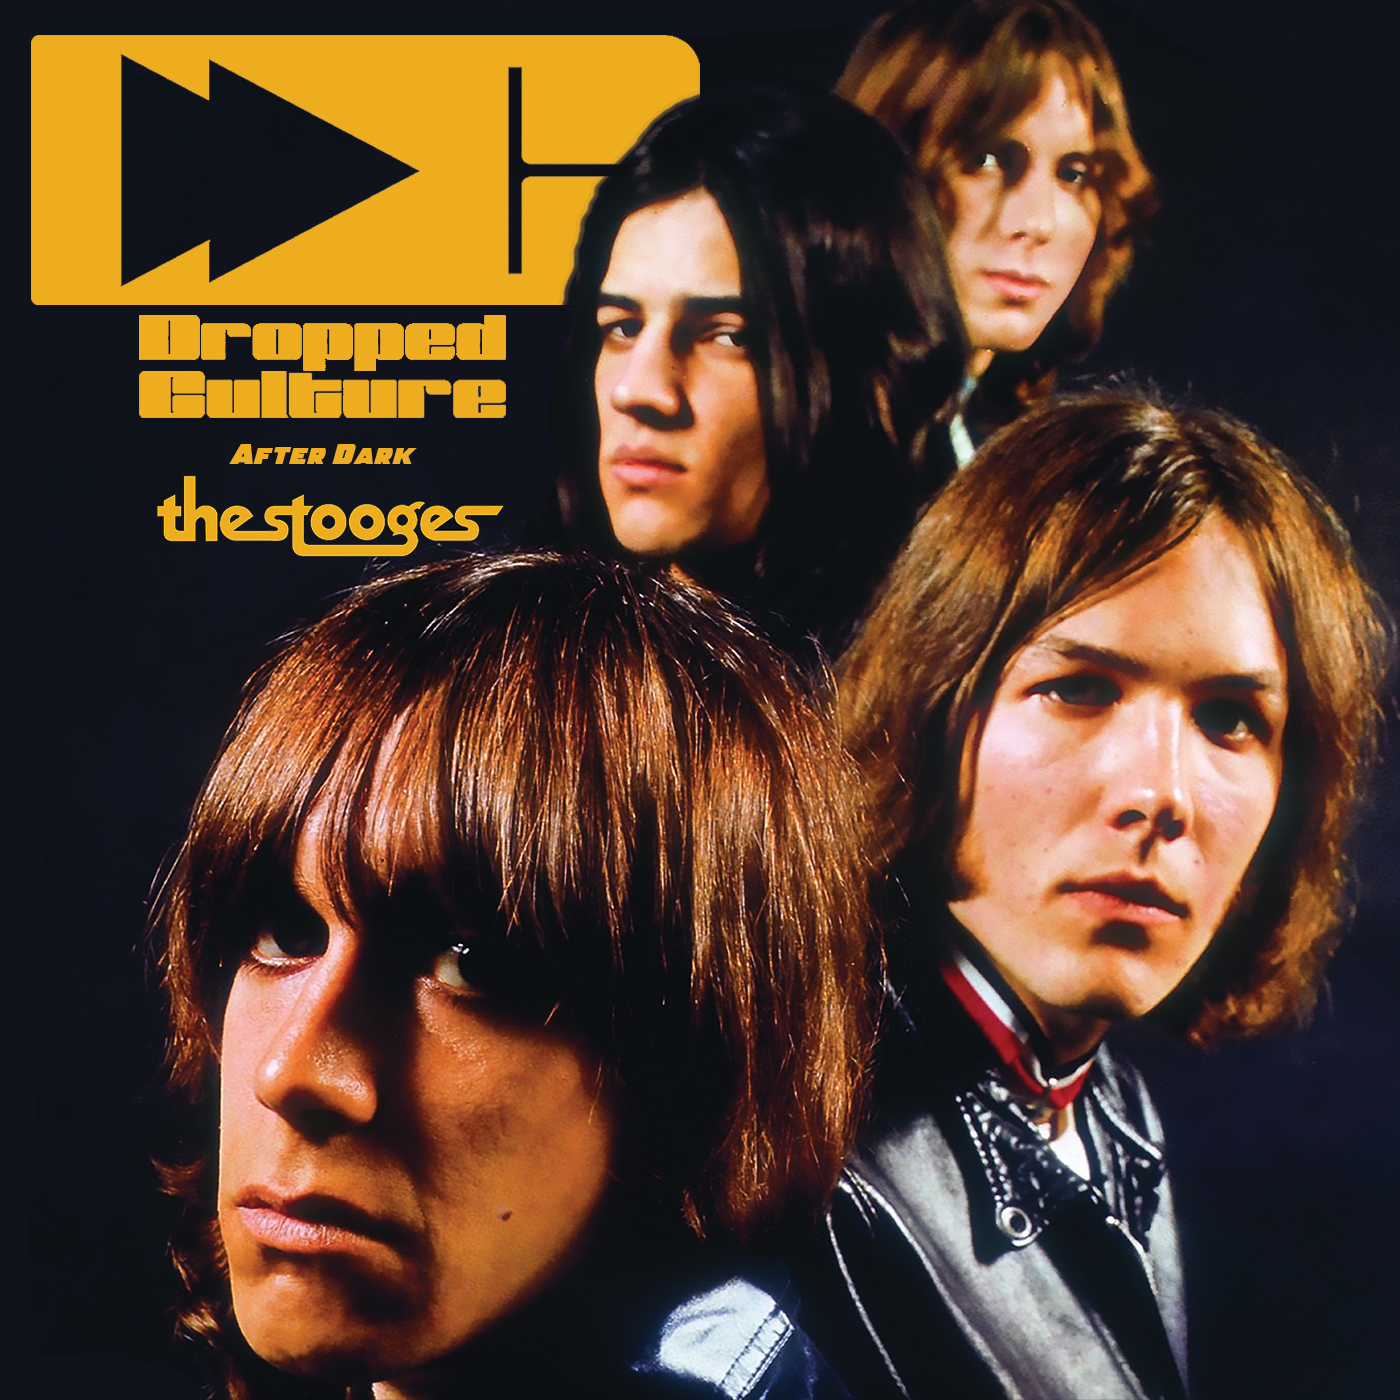 Dropped Culture After Dark The Stooges